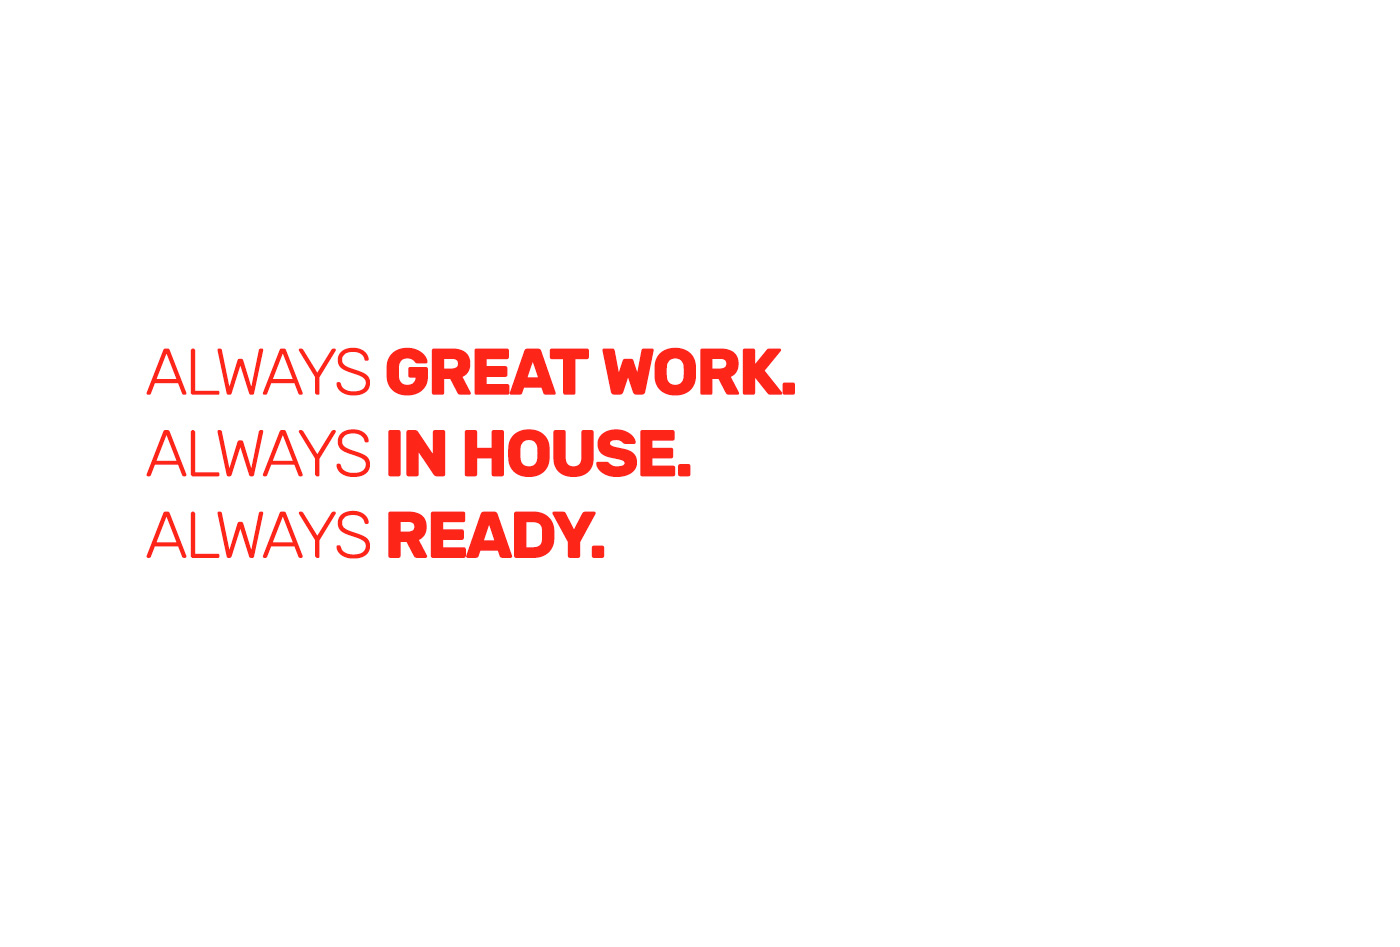 Always Great Work. Always In House. Always Ready.